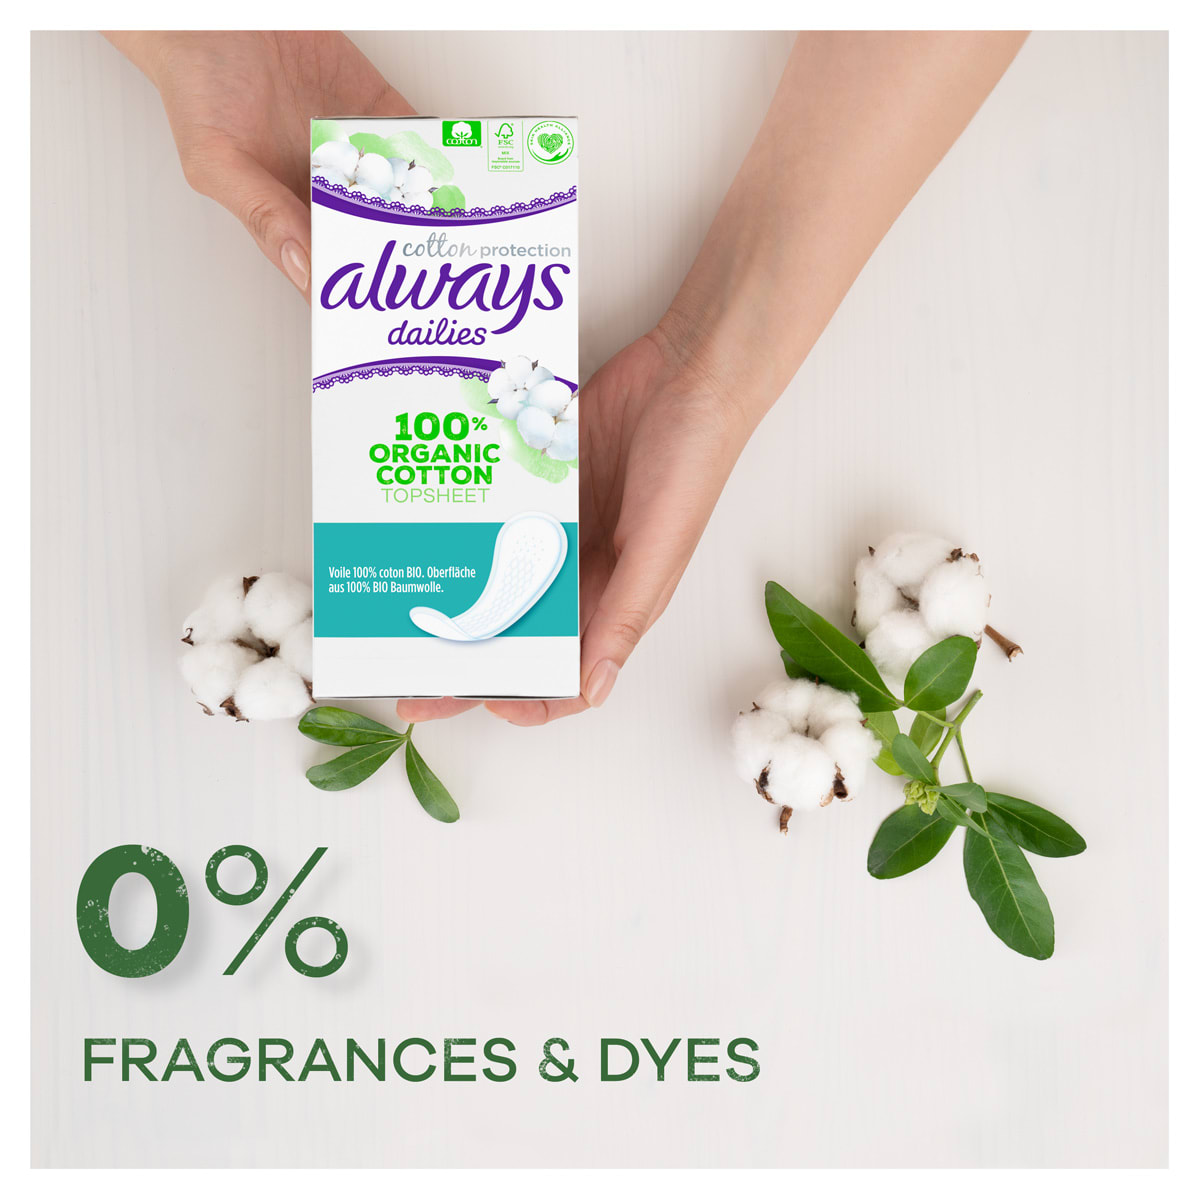 0% Fragrances & dyes